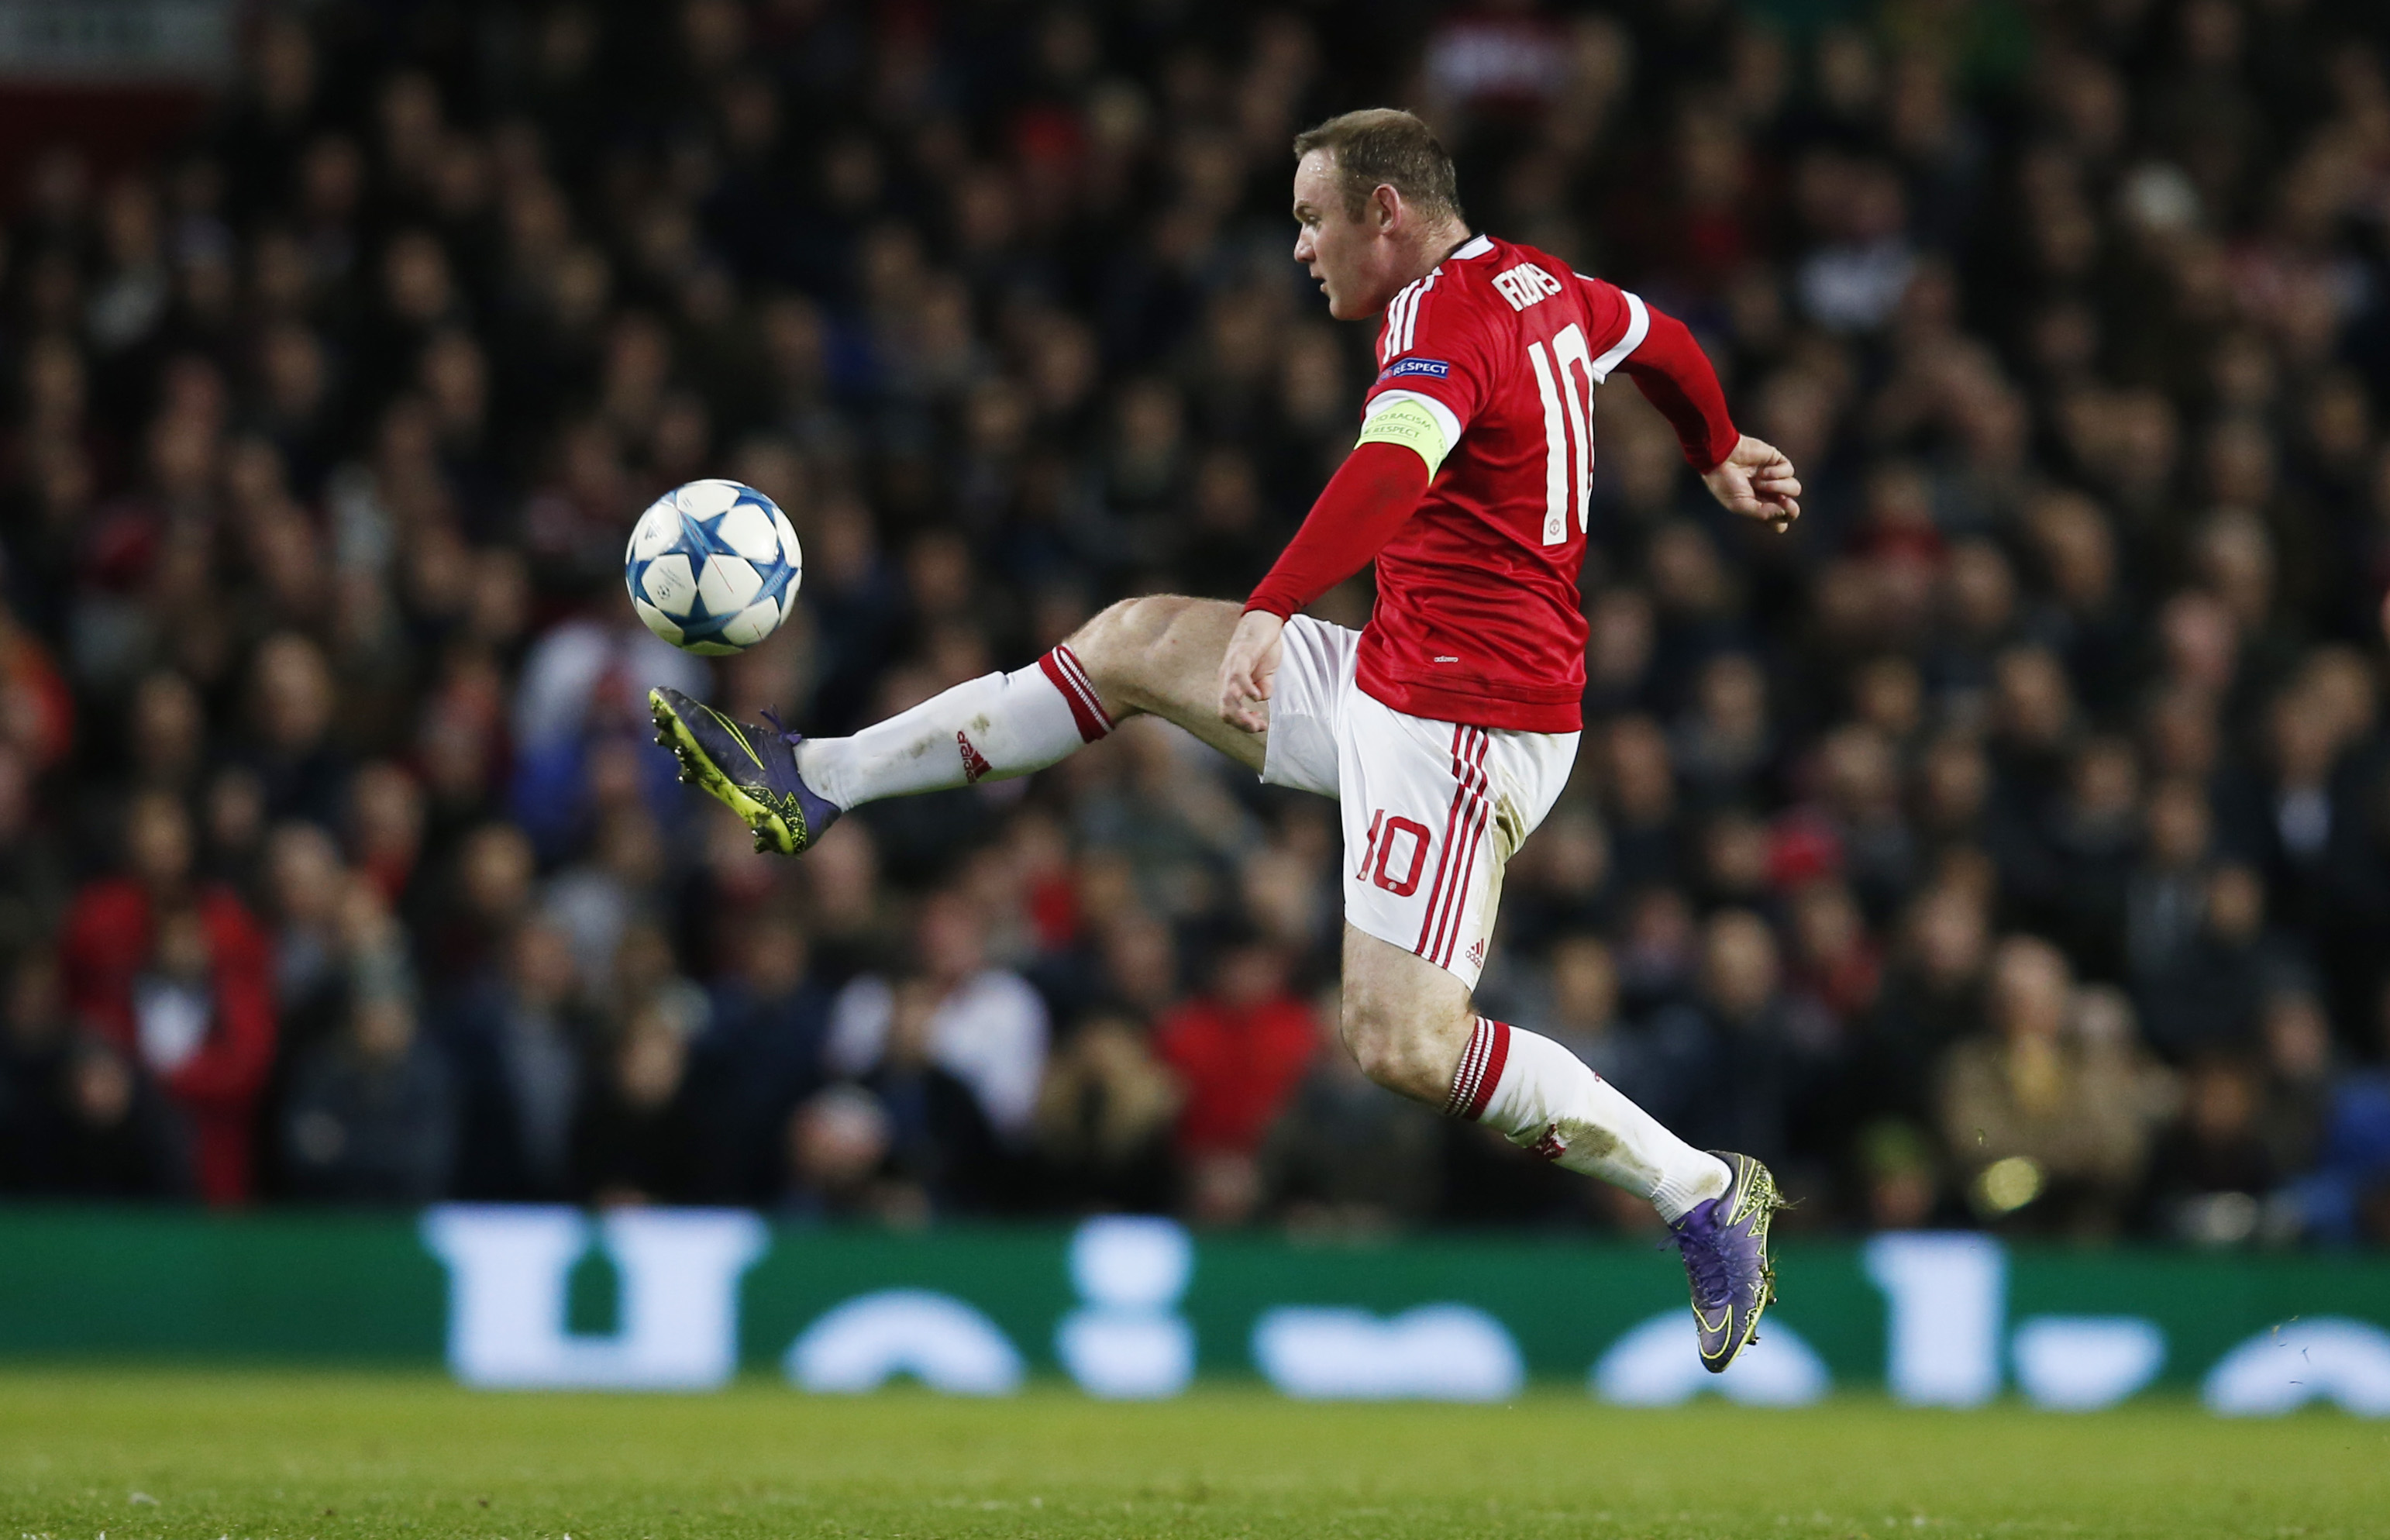 Manchester United's Wayne Rooney looks dejected during UEFA Champions League game against PSV Eindhoven at Old Trafford on November 25, 2015. Photo: Reuters